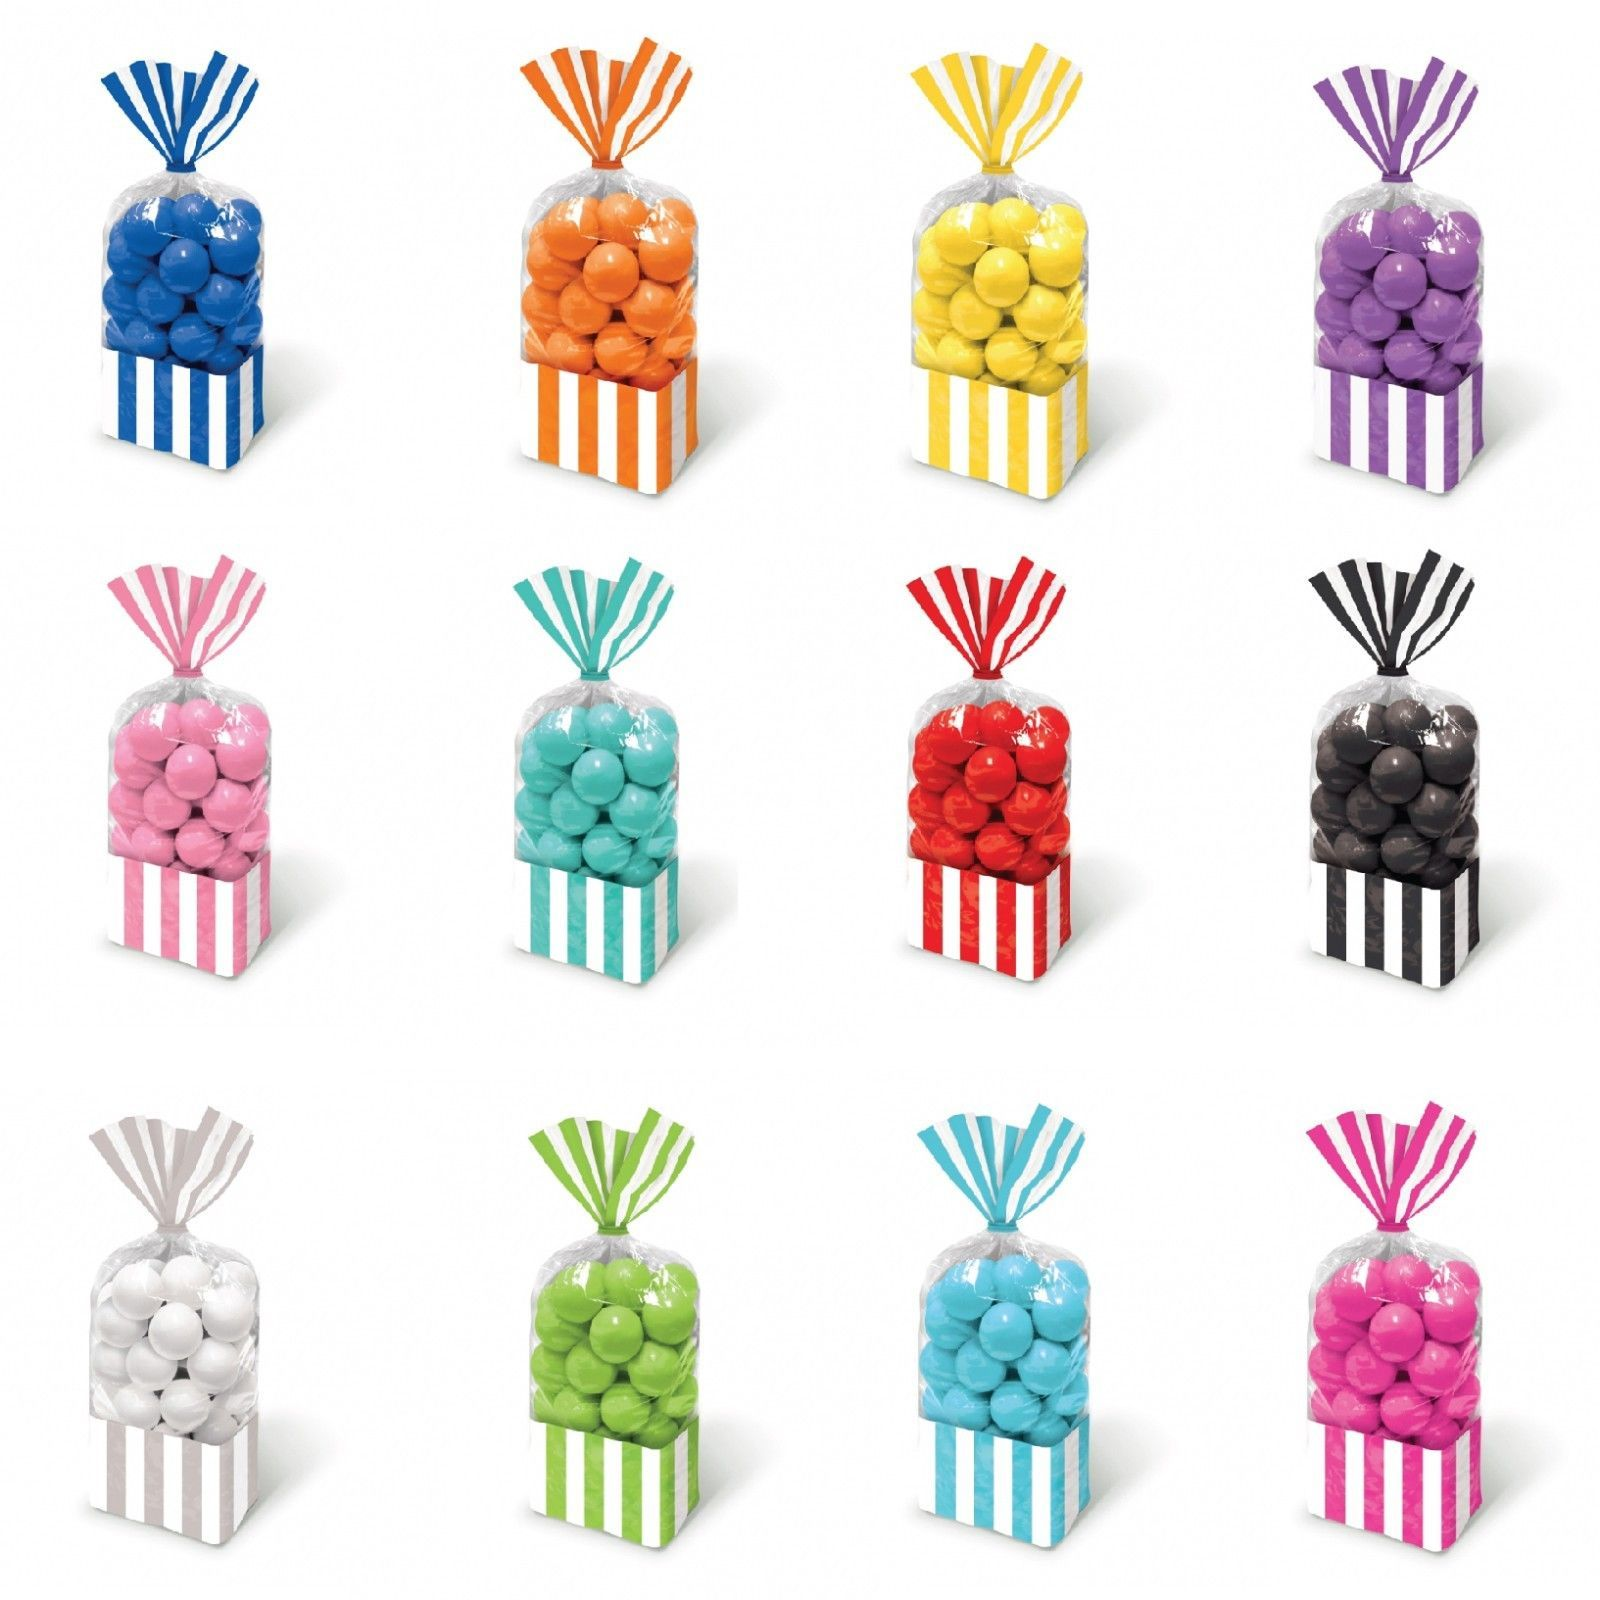 10 Striped Stripes Candy Buffet Sweet Treat Loot Party Supplies Favor Bags | eBay